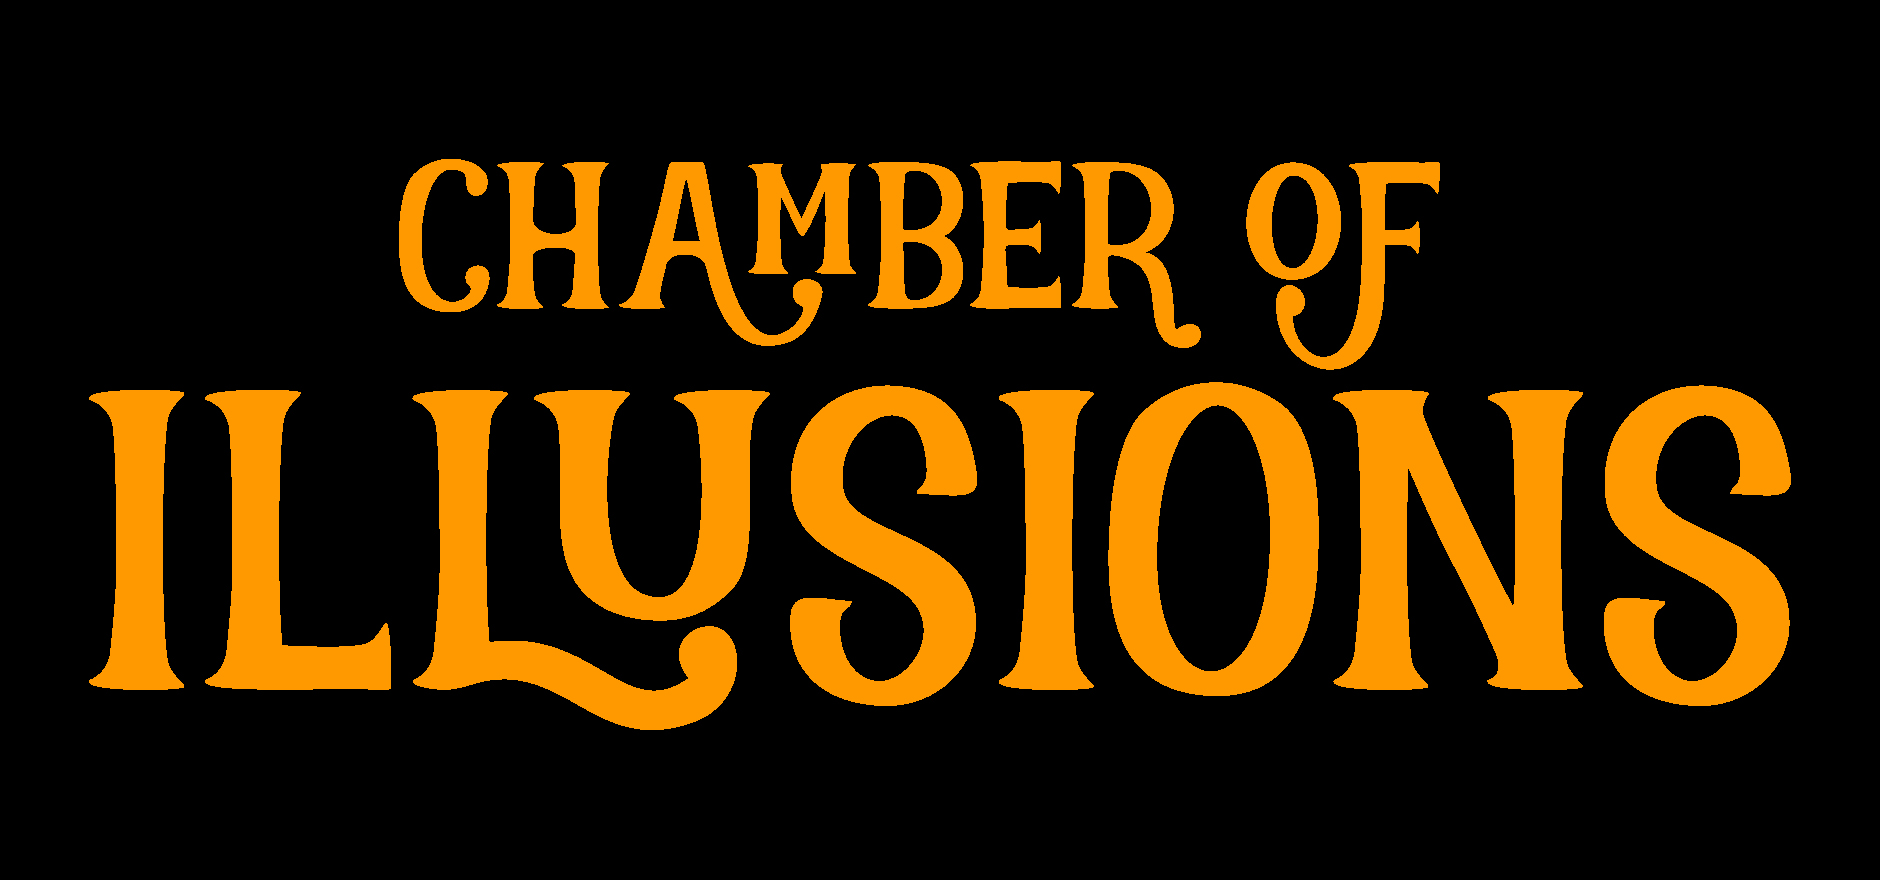 Pittsburgh escape room game Chamber of Illusions